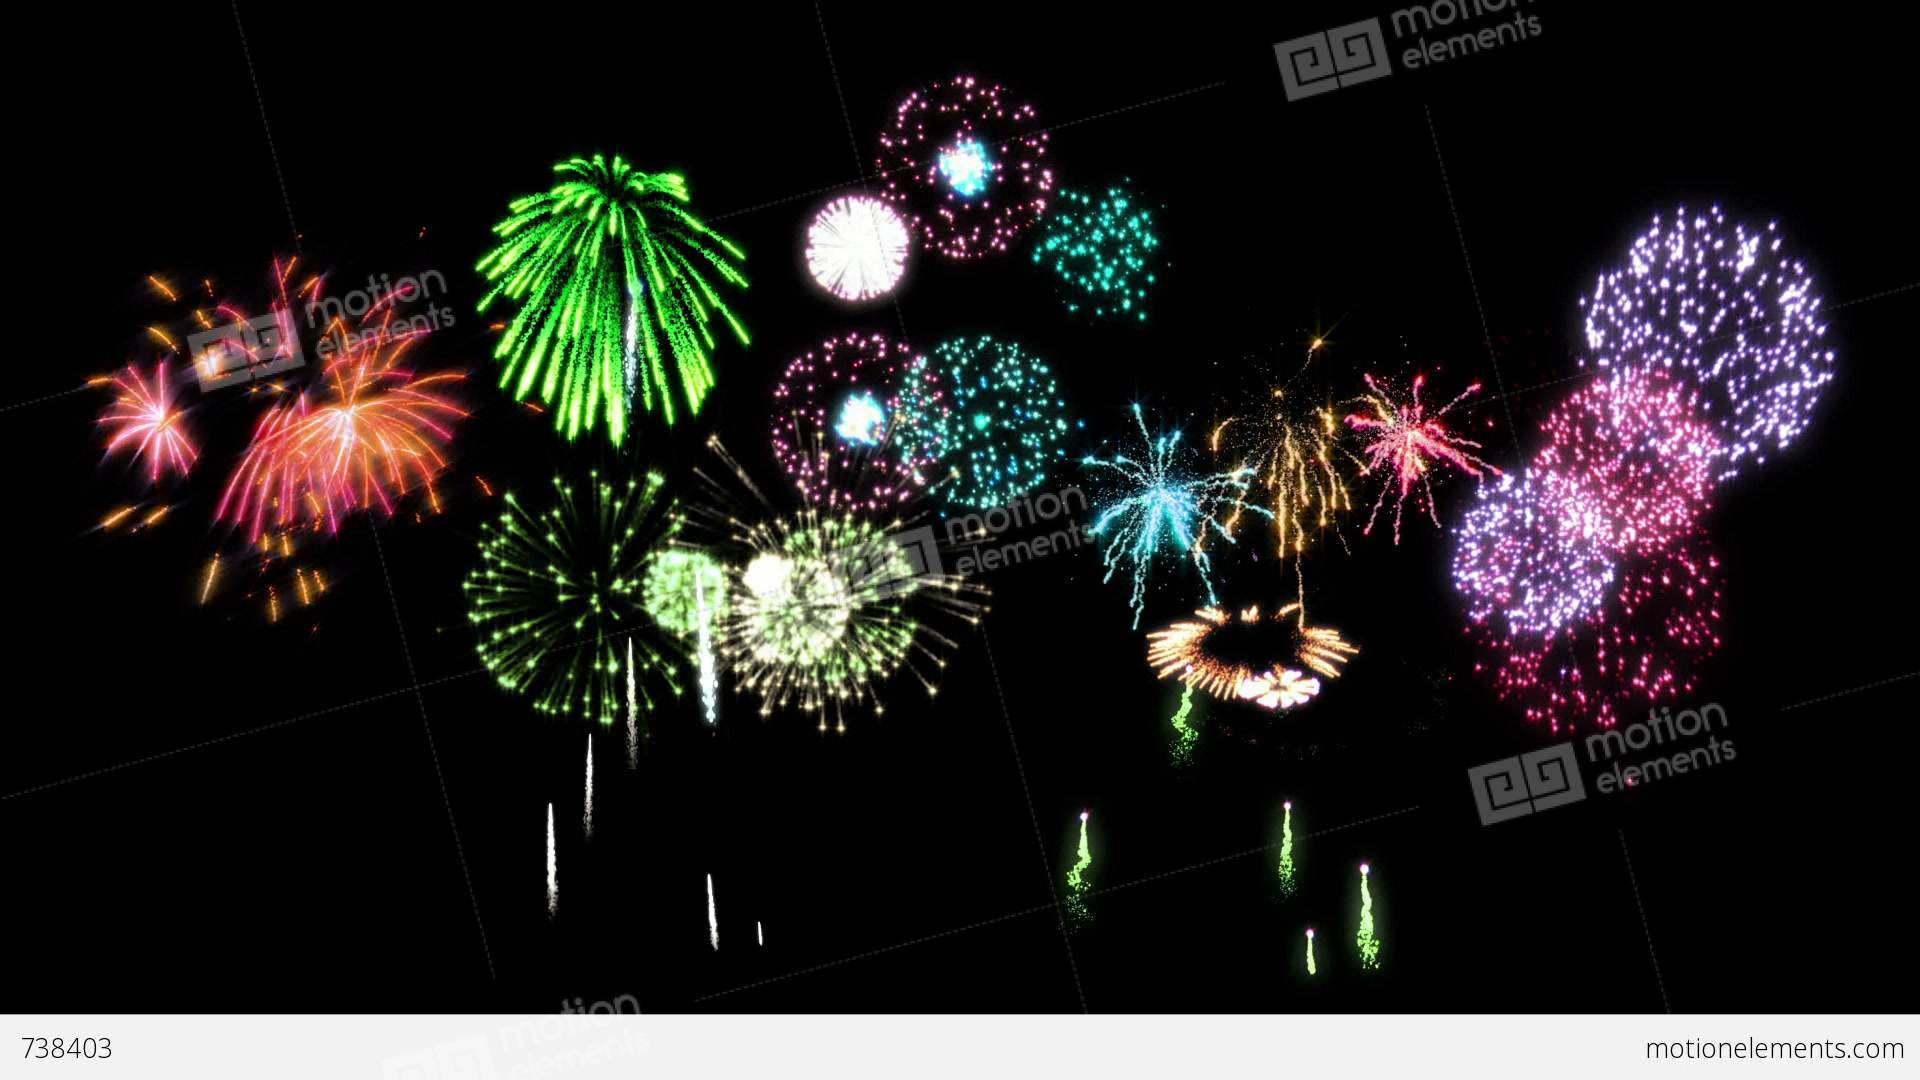 Fireworks further Watch in addition Stock Video 2292503 The End Fireworks 02 also Fullscreen as well De. on 3d animated gaming